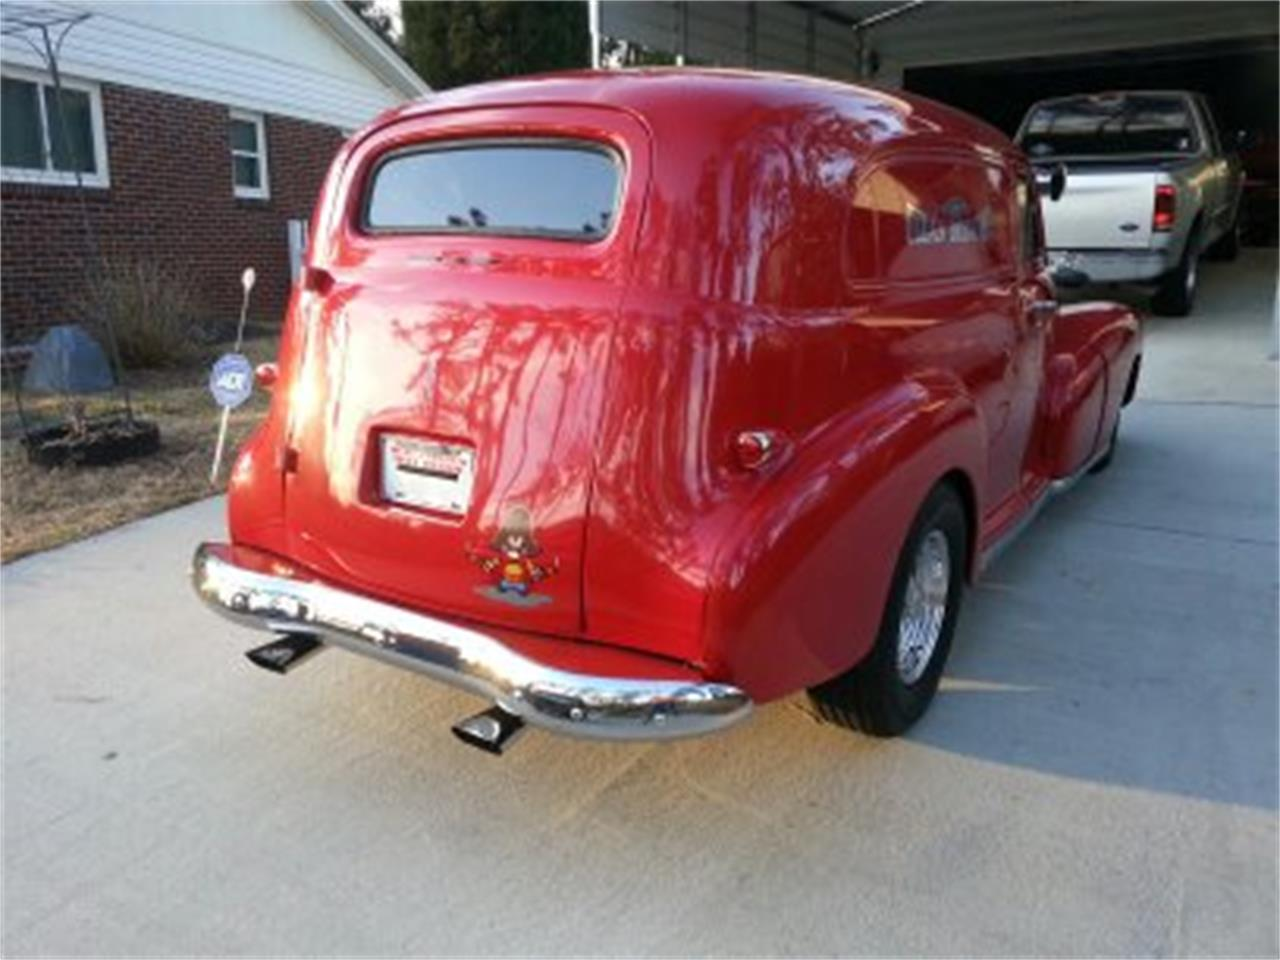 1948 Chevrolet Sedan Delivery for sale in North Augusta, SC – photo 15